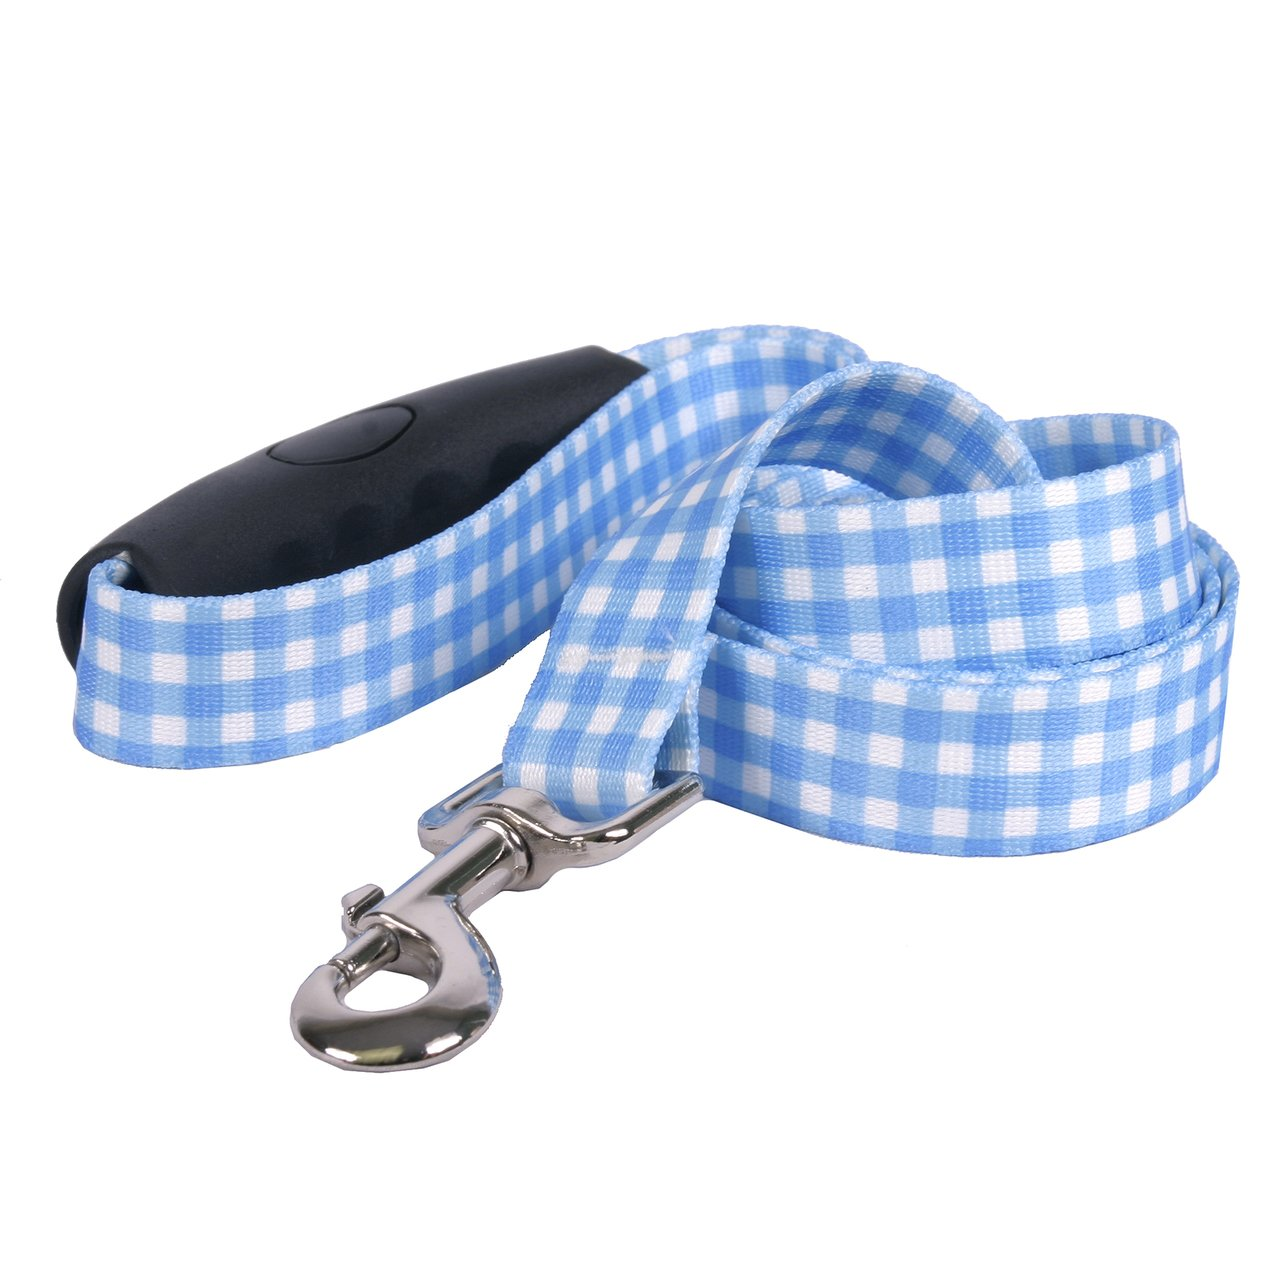 5 8\ Southern Dawg Gingham bluee Dog Leash with Comfort Grip Handle-Small-5 8  and 5' (60 ) Made in the USA by Yellow Dog Design